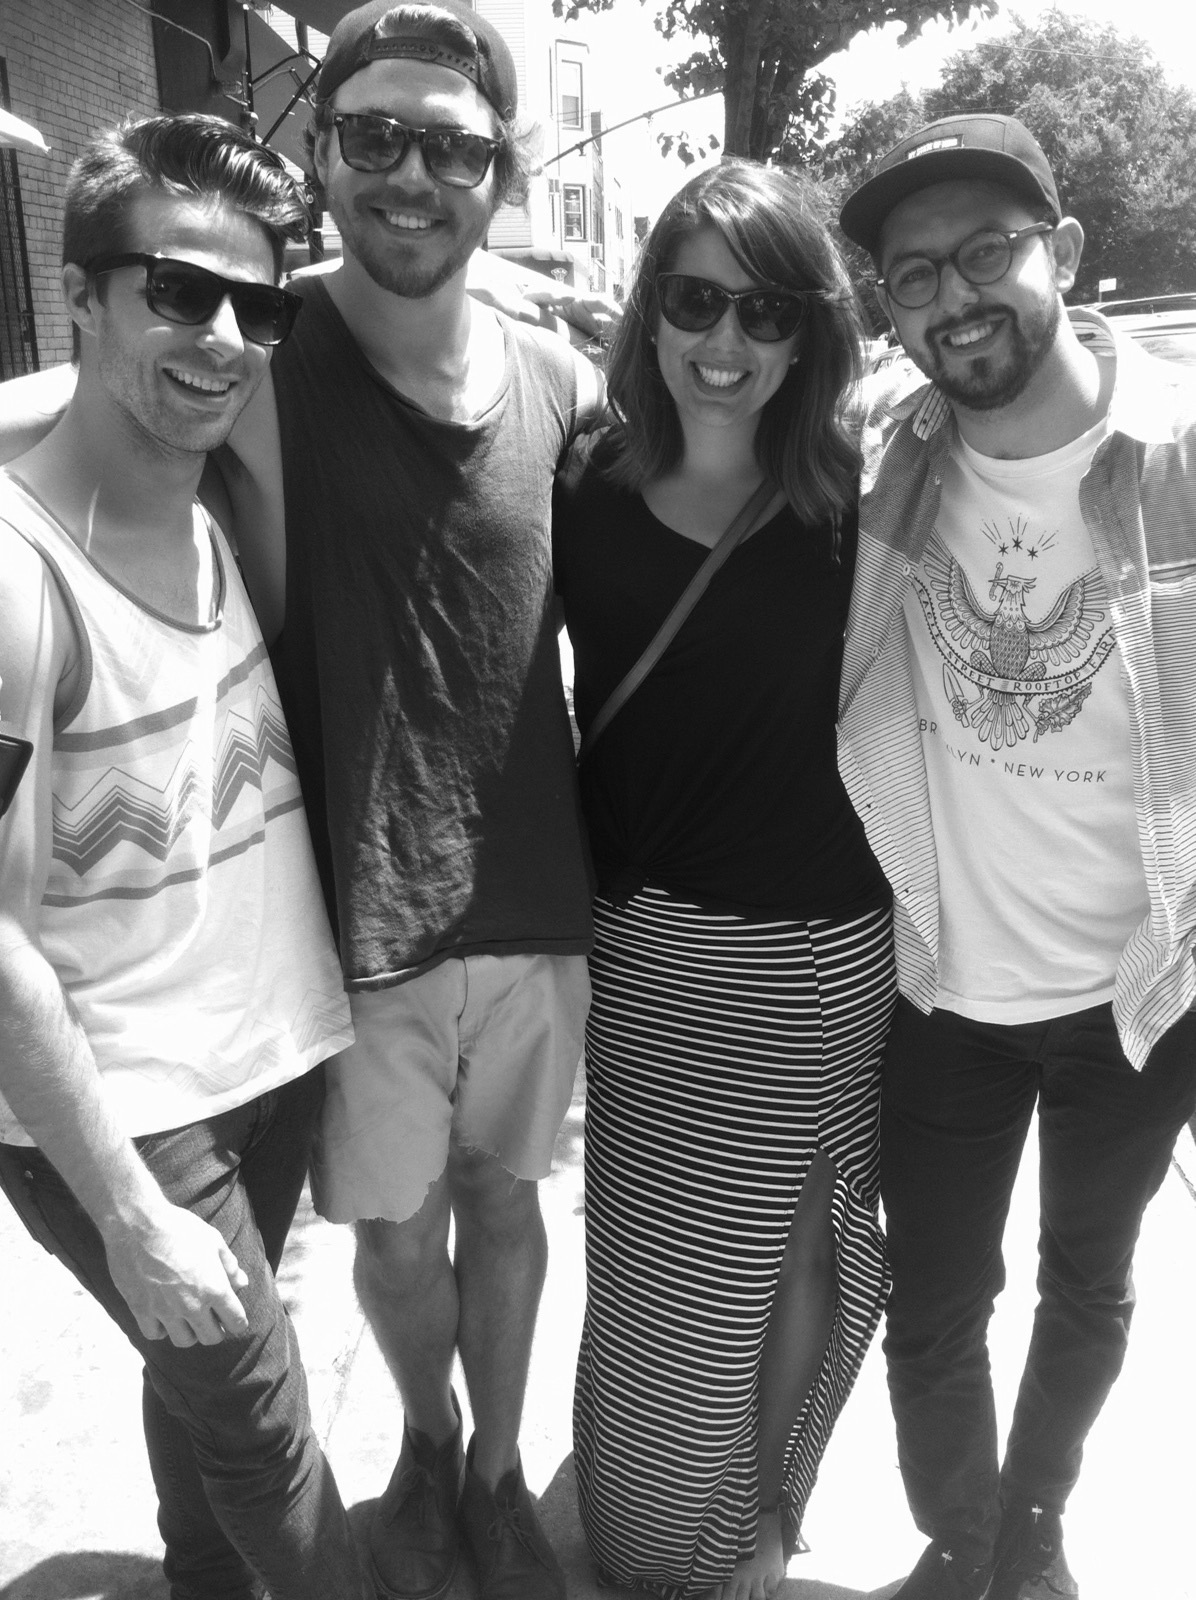 Brandon, Matty, Me, and Nic (with the eagle on his shirt) post brunch.